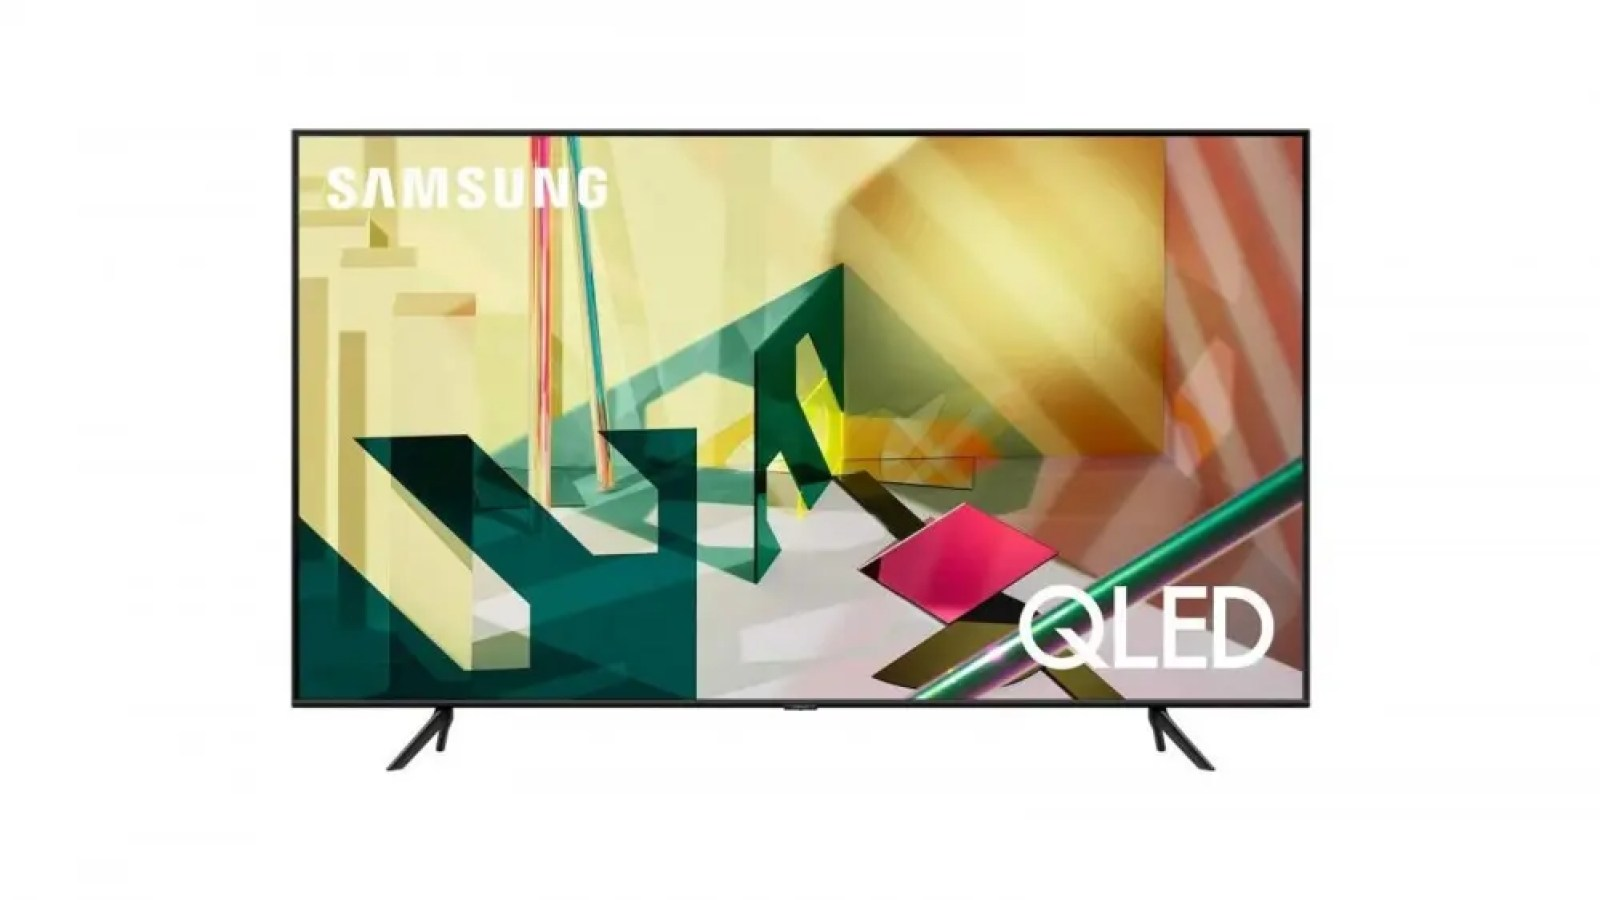 SAMSUNG Q70T Series TV